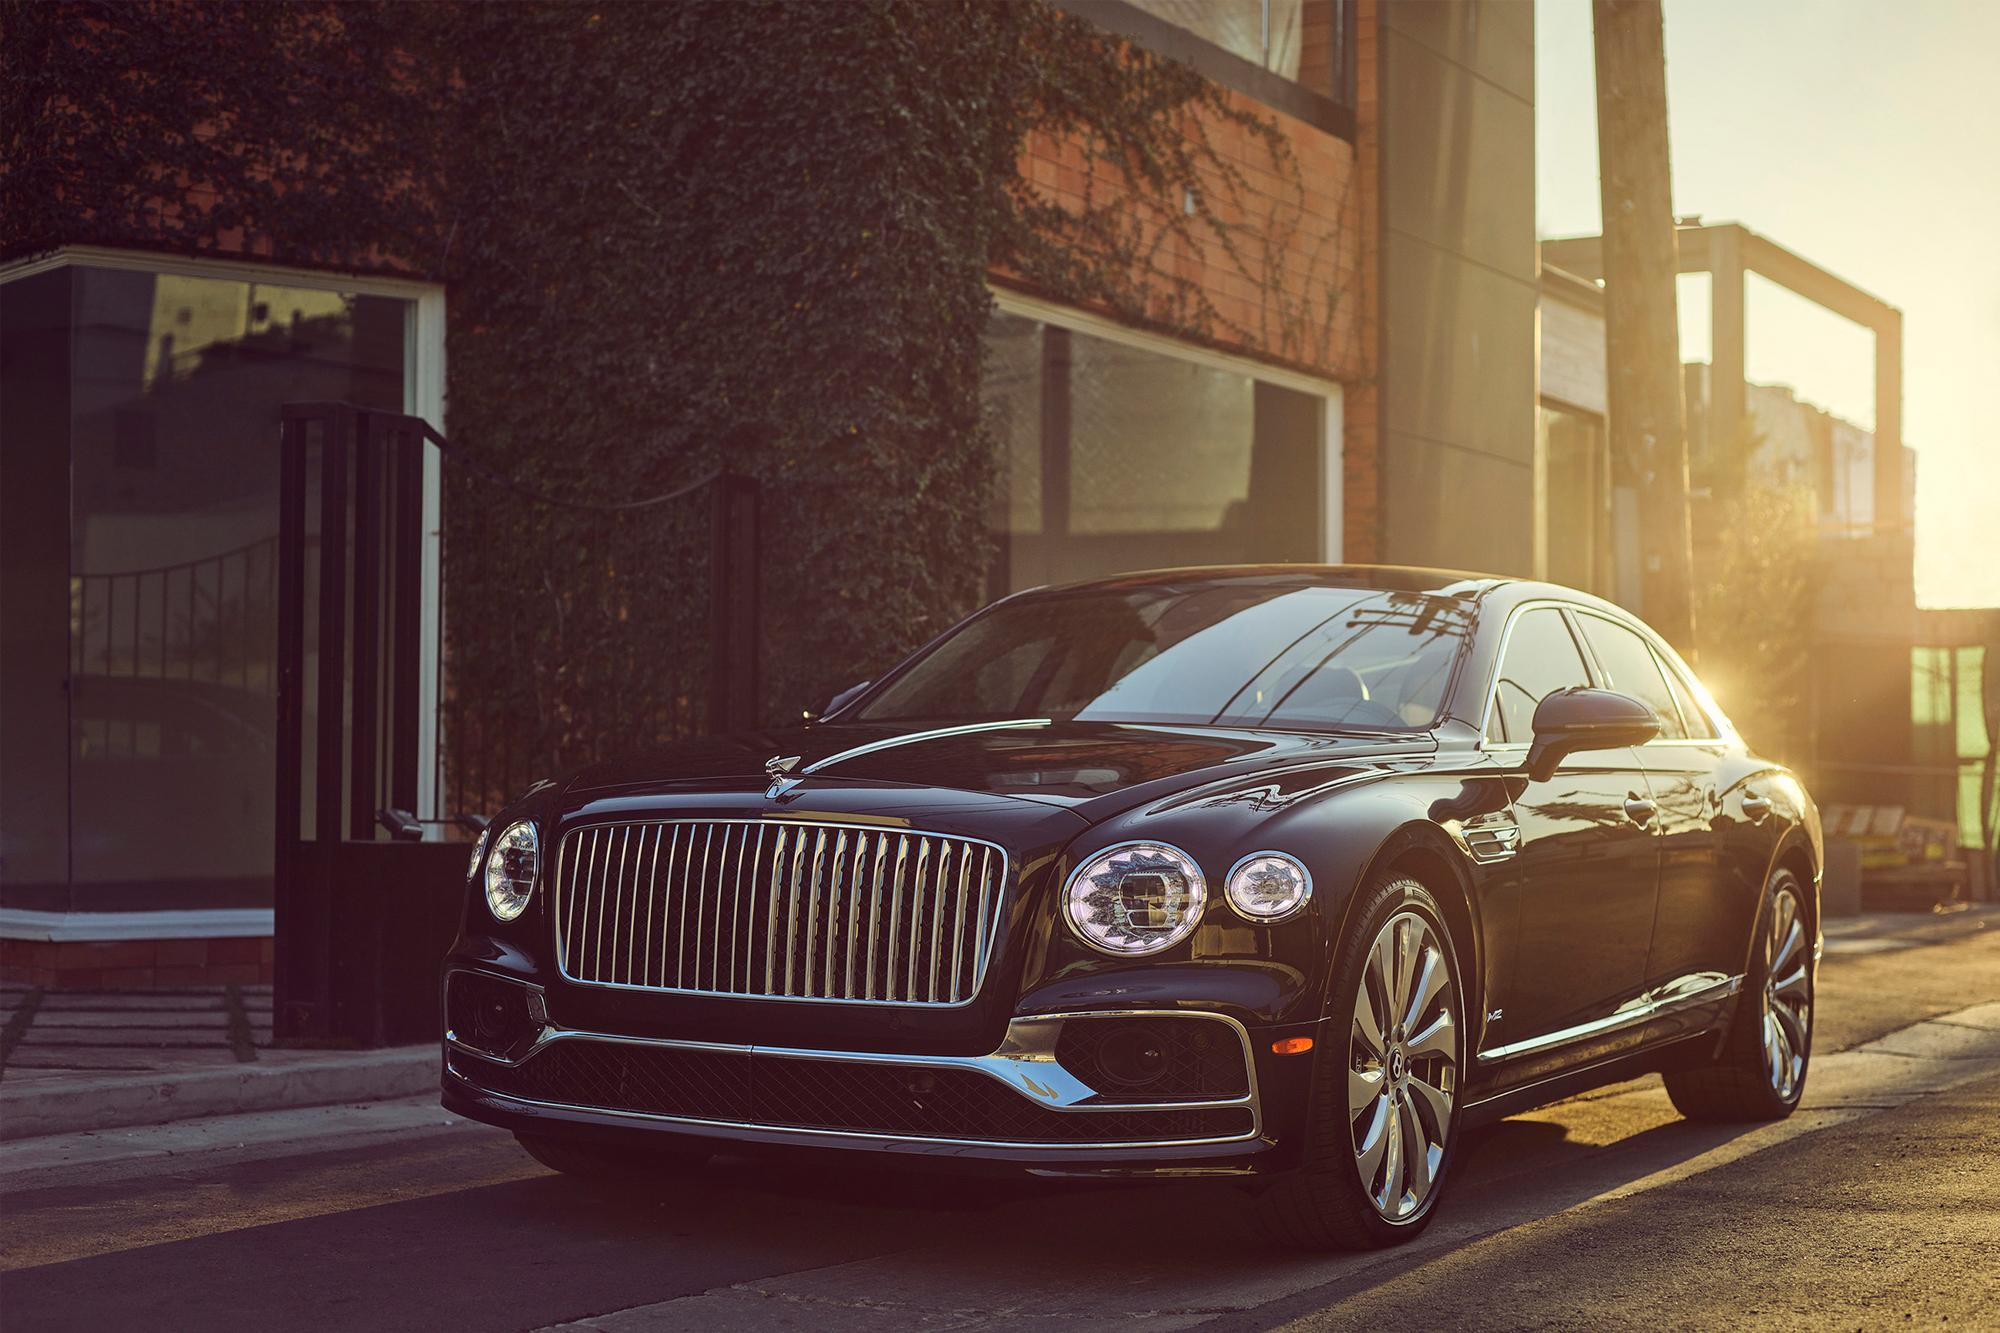 Best Dream Machine αναδείχθηκε η Flying Spur